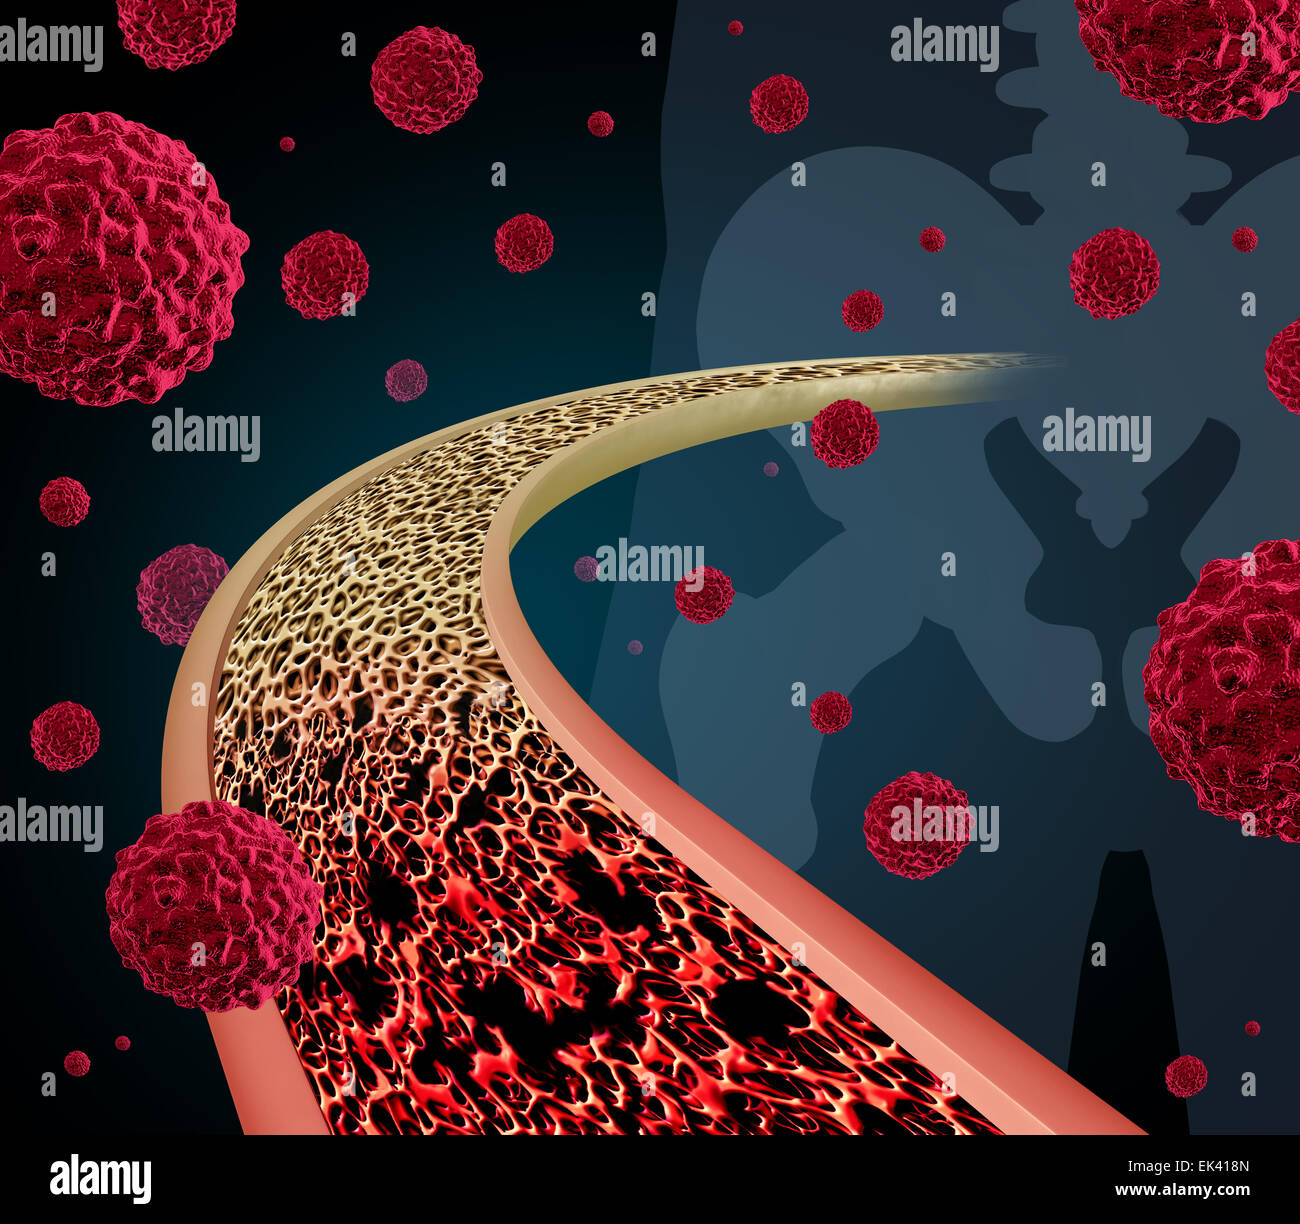 Bone cancer concept illustration as a close up diagram of the inside of a human bone from a skeletal hip joint as - Stock Image